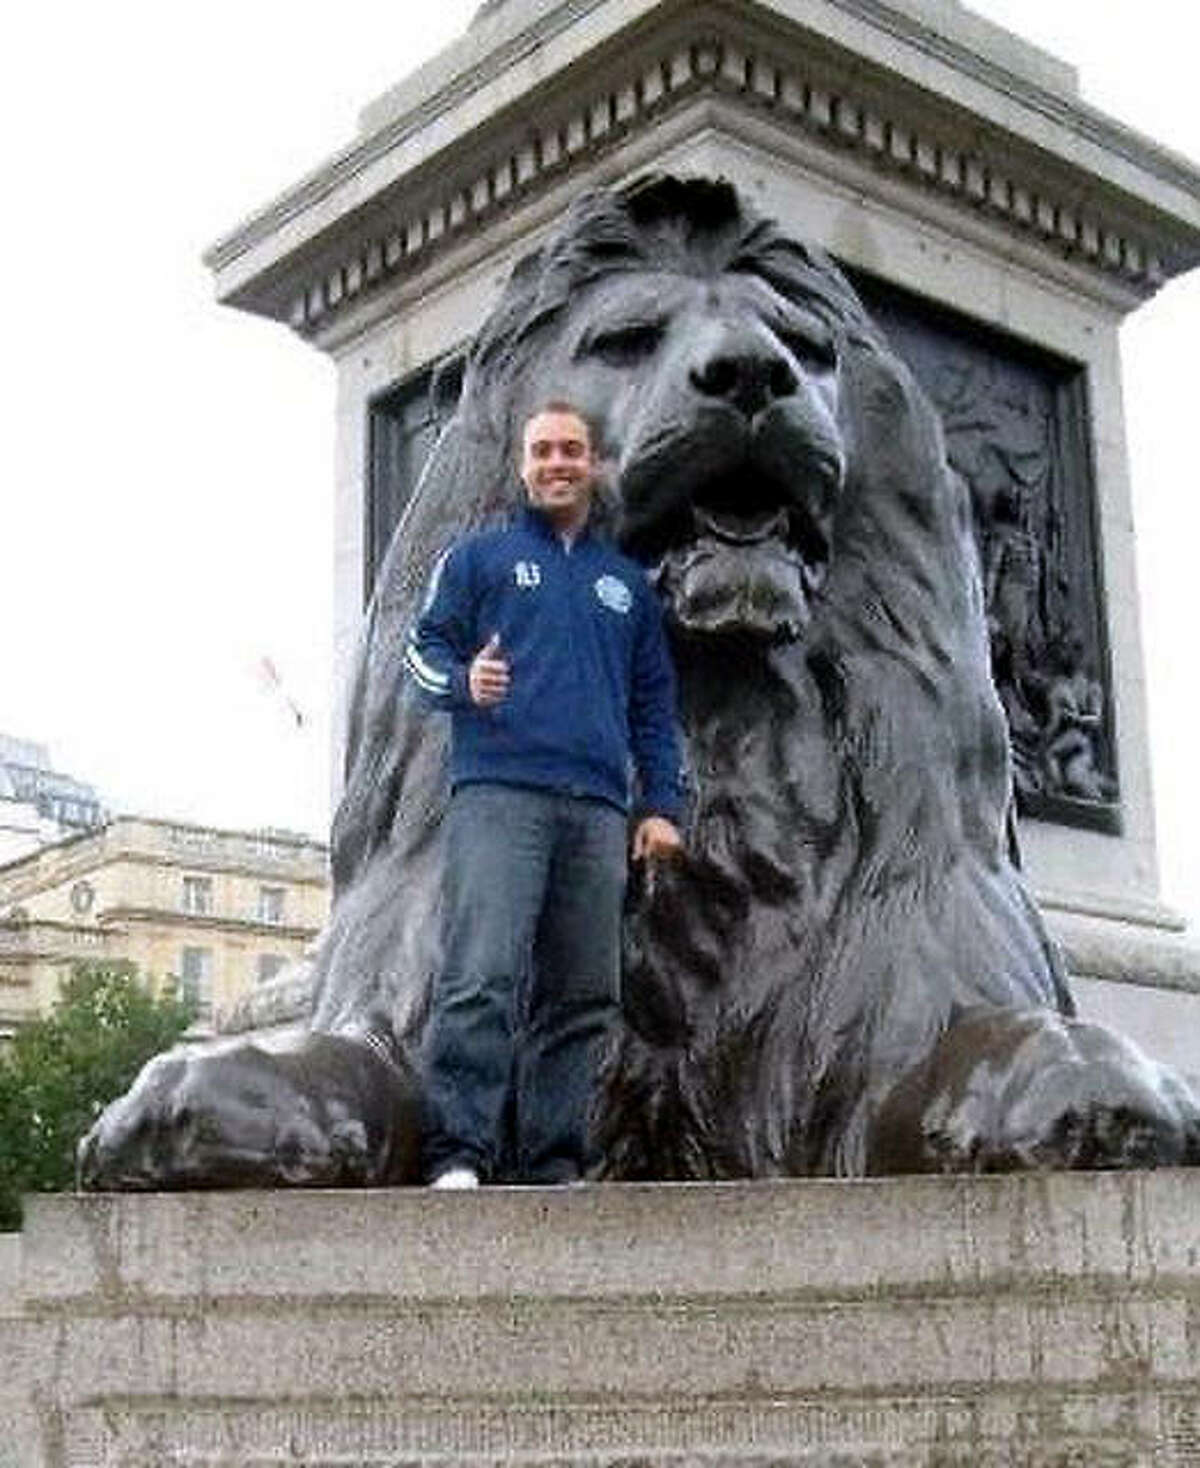 Jesse Daniels, the new girls soccer coach at East Alton-Wood River High, poses with a lion statue at Trafalgar Square in London in 2008. Daniels, who spent two years working in England as a teacher, said it was during that time he developed a new-found appreciation for soccer and learned plenty of new things about a game he thought he already knew a lot about.